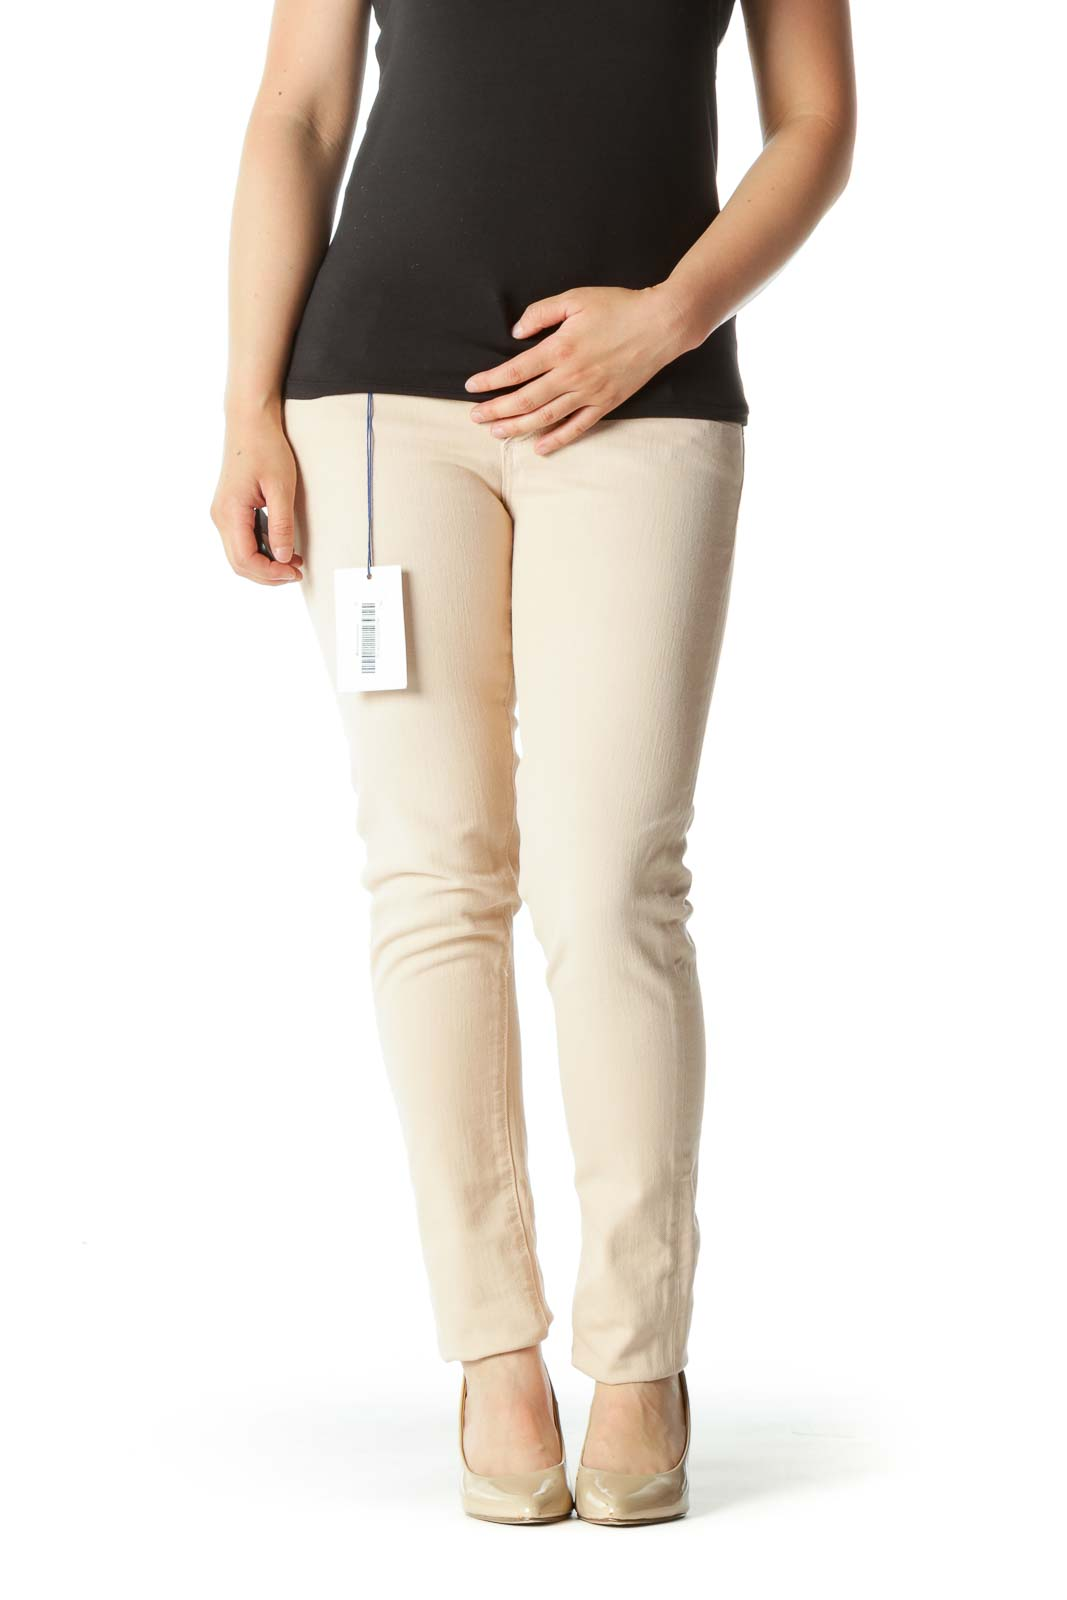 Light Peach-Pink Cotton Blend Stretch Skinny Pants